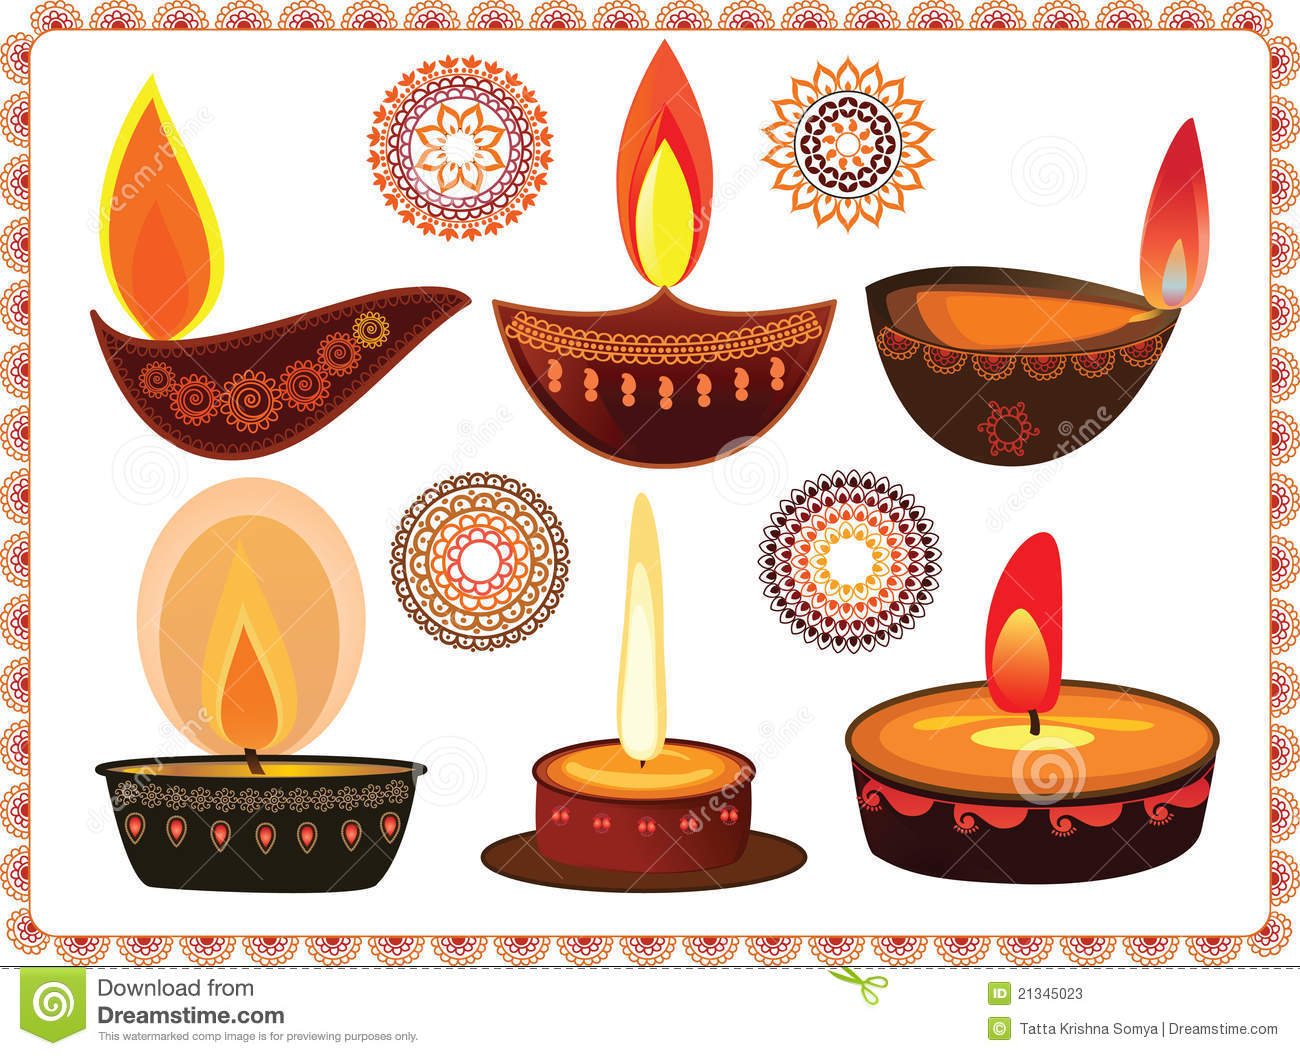 Diwali Oil Lamps With Mandala Design Stock Illustration ... for Diwali Lamp Designs  51ane